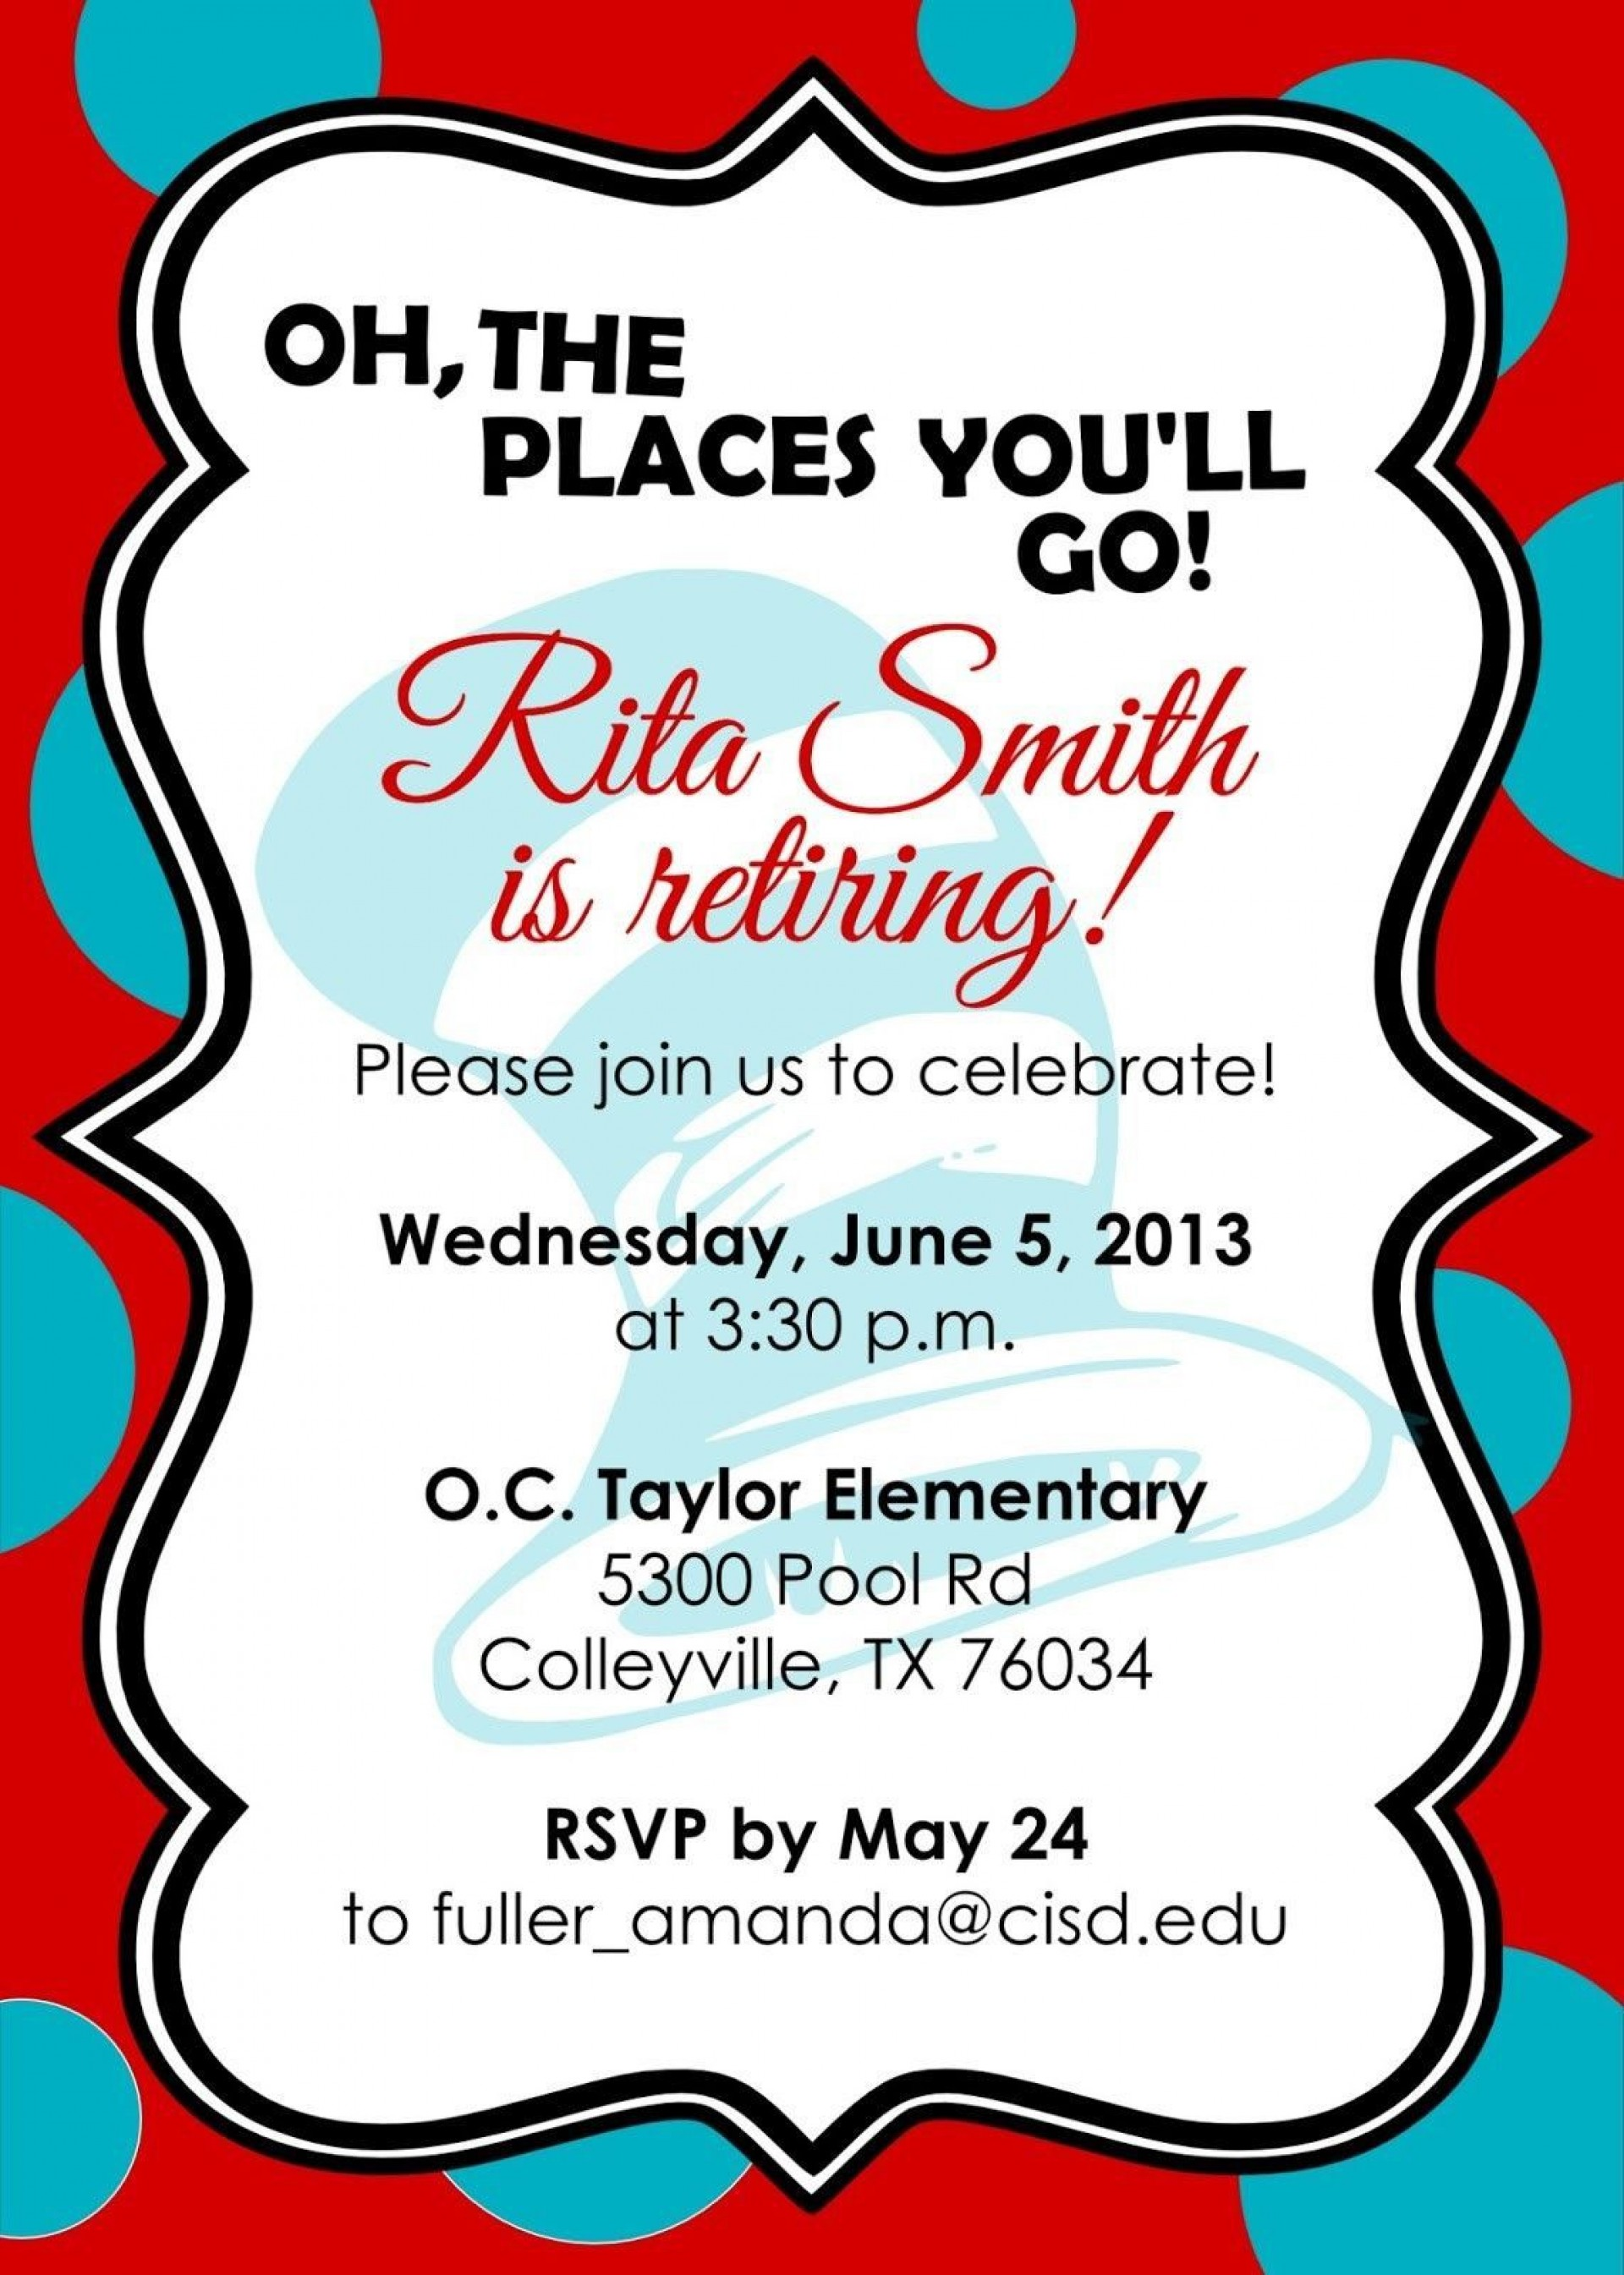 007 Incredible Retirement Party Invite Template Word Free Picture 1920